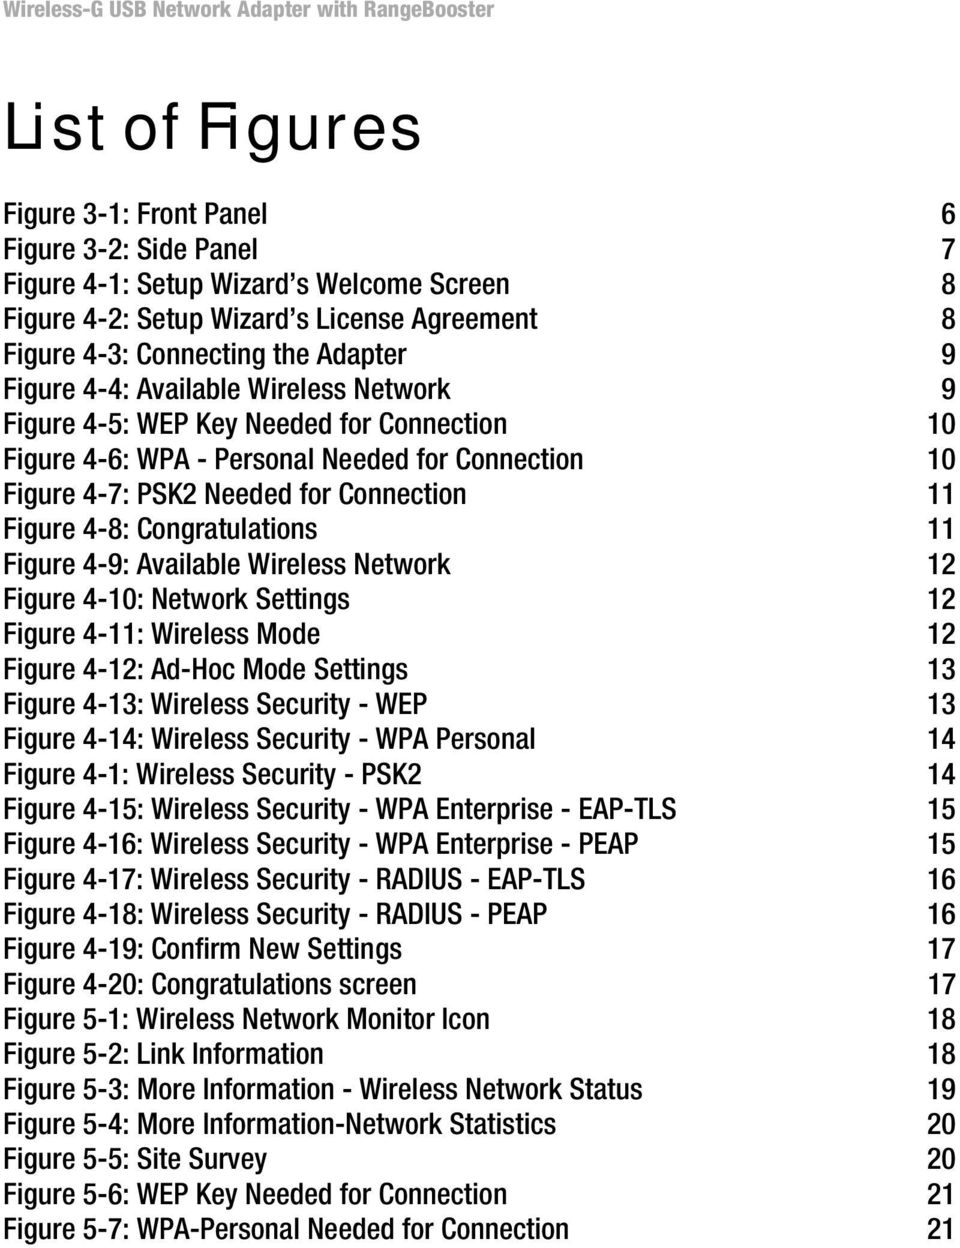 Congratulations 11 Figure 4-9: Available Wireless Network 12 Figure 4-10: Network Settings 12 Figure 4-11: Wireless Mode 12 Figure 4-12: Ad-Hoc Mode Settings 13 Figure 4-13: Wireless Security - WEP